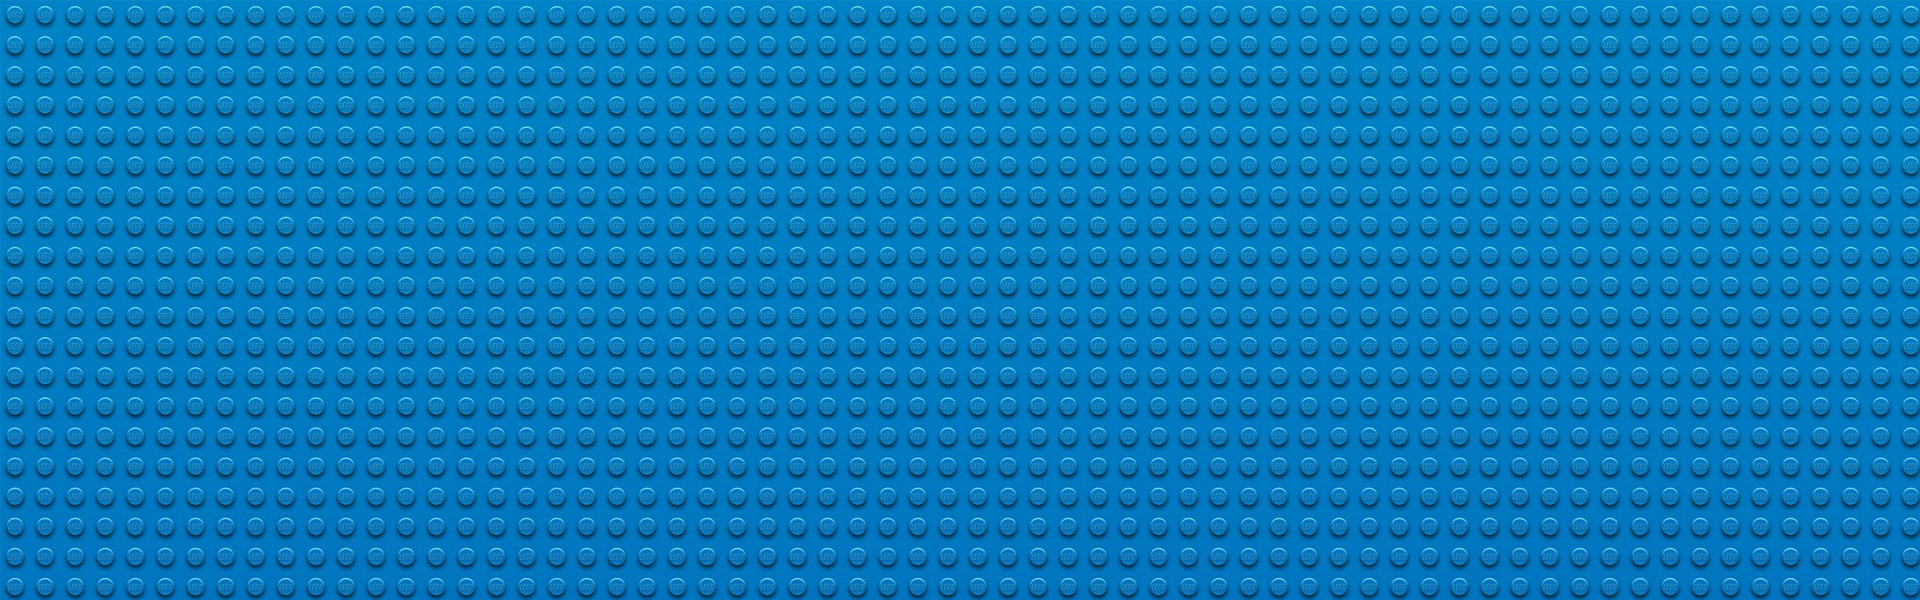 lego  blue  poster background image for free download